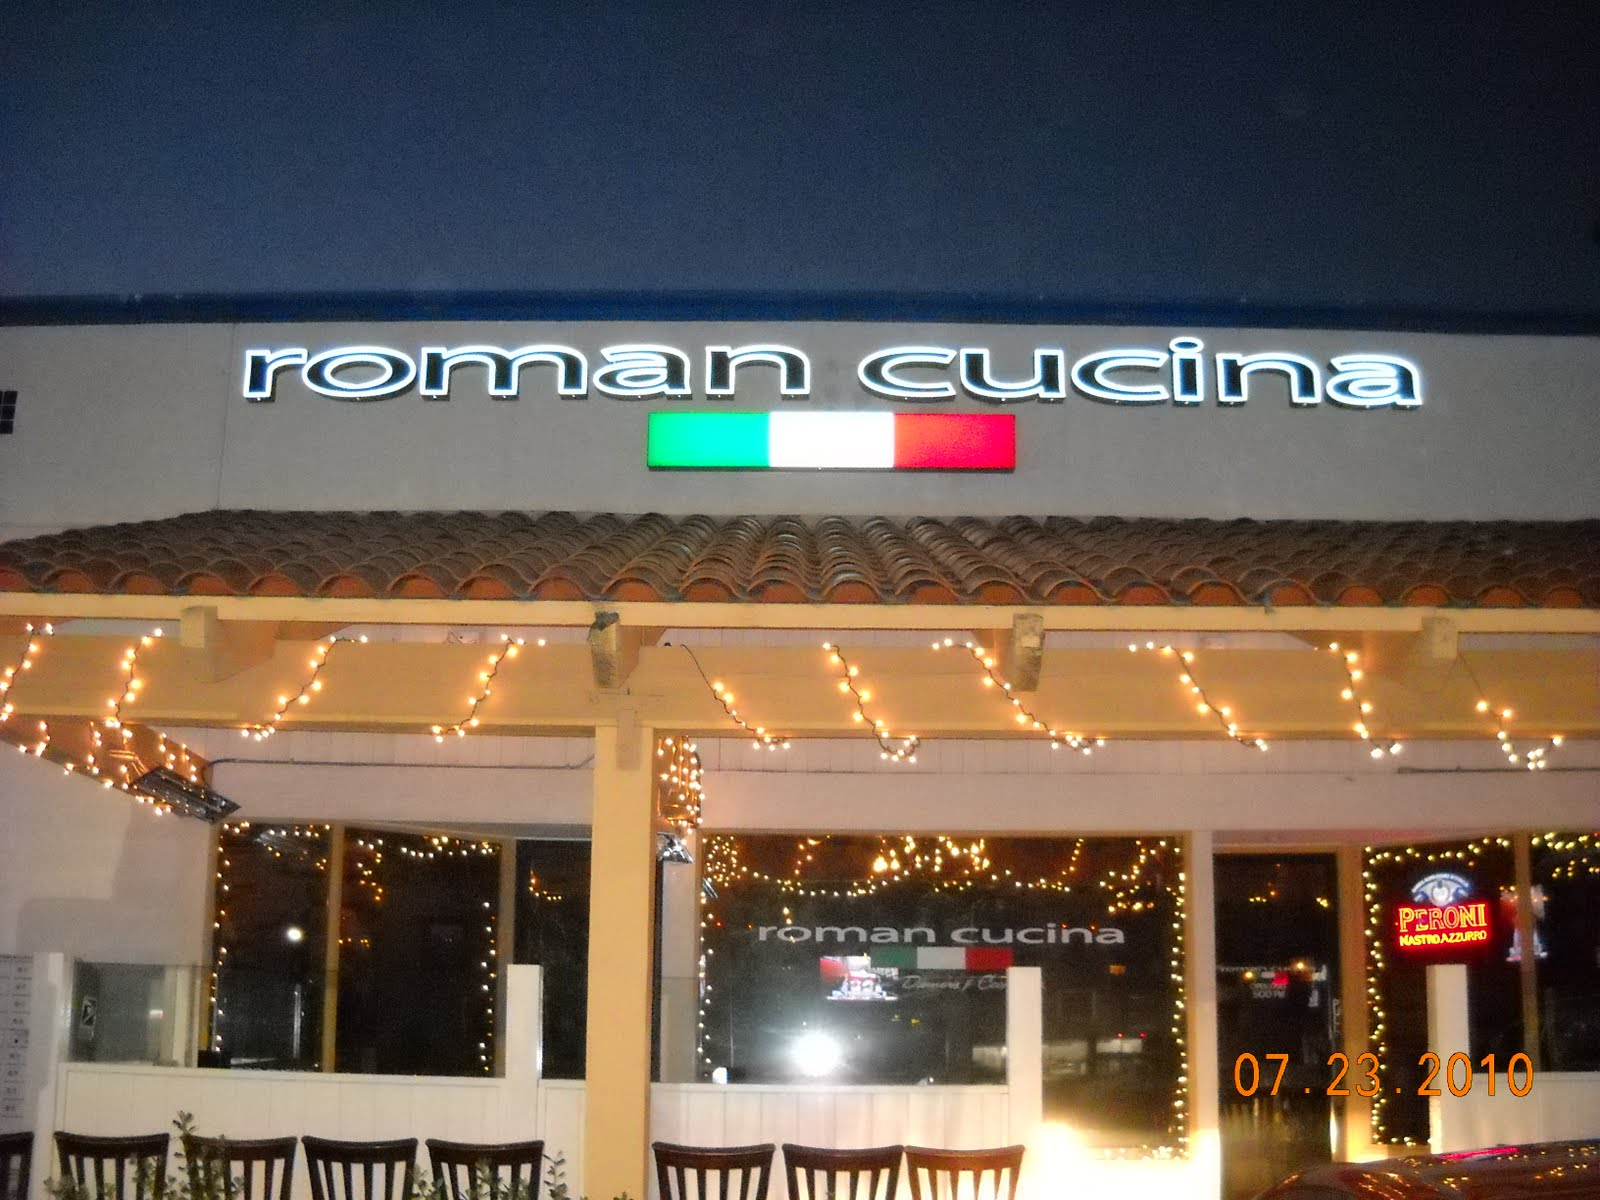 Eating my way through oc: all roads lead to roman cucina